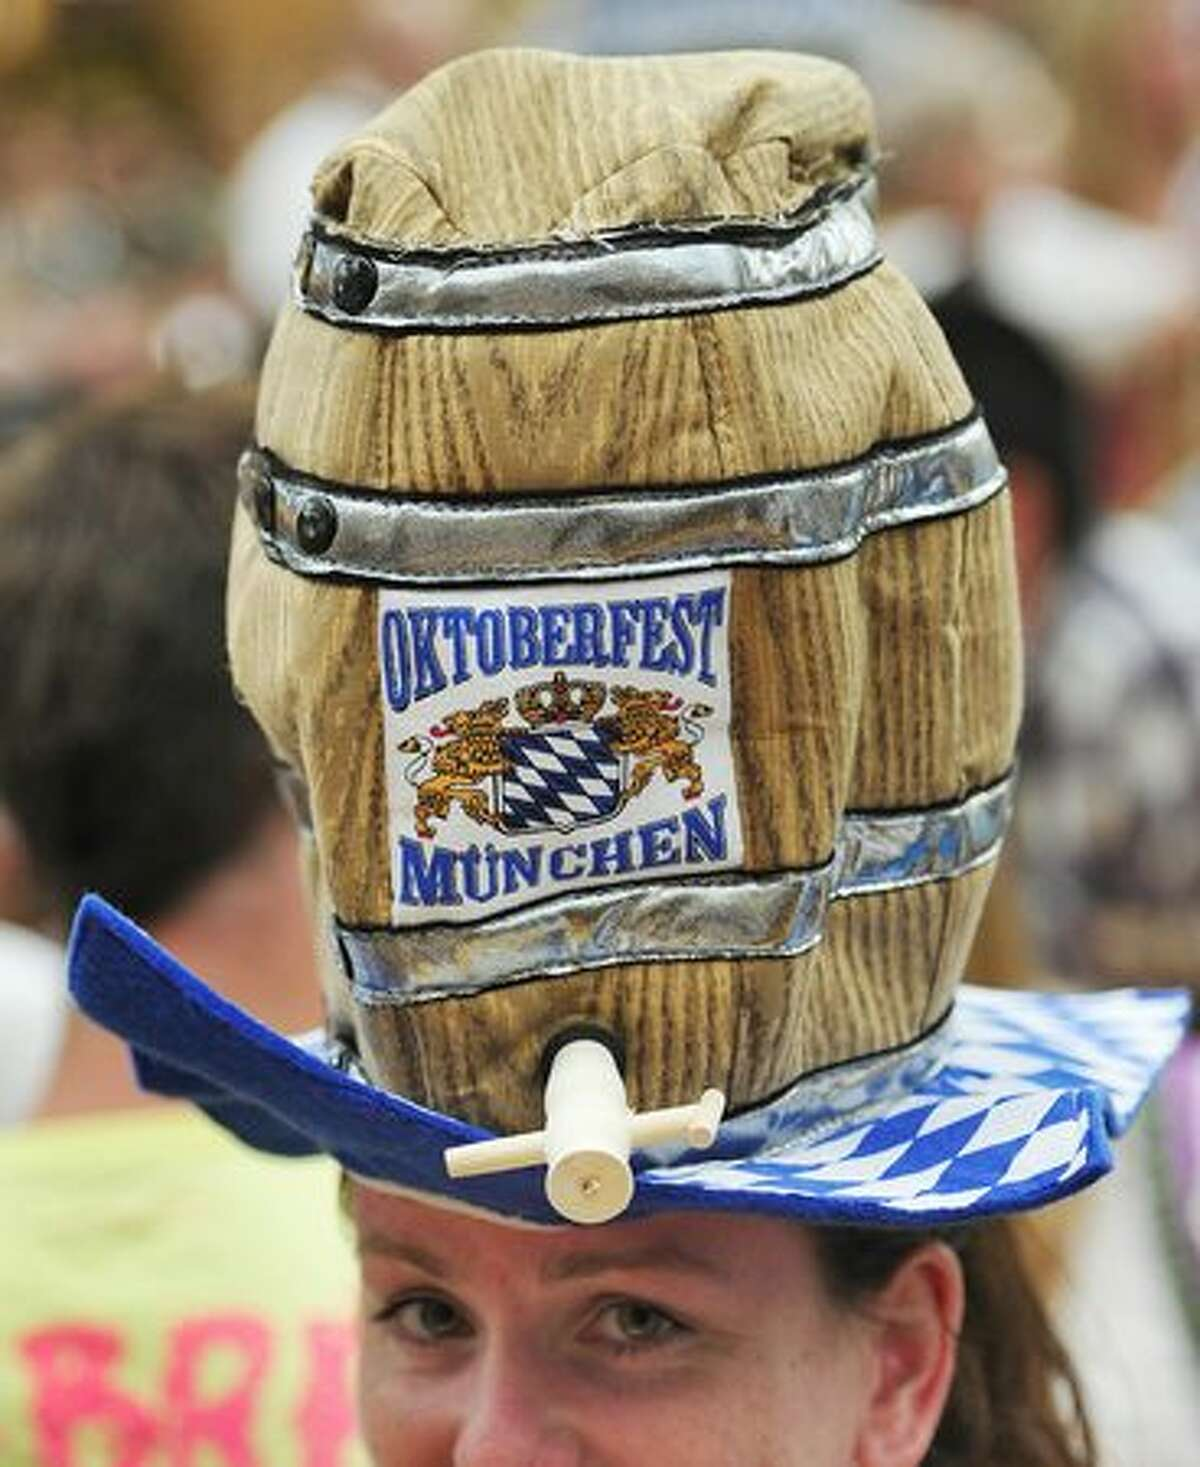 A young woman wears a hat featuring a beer barrel with a logo reading